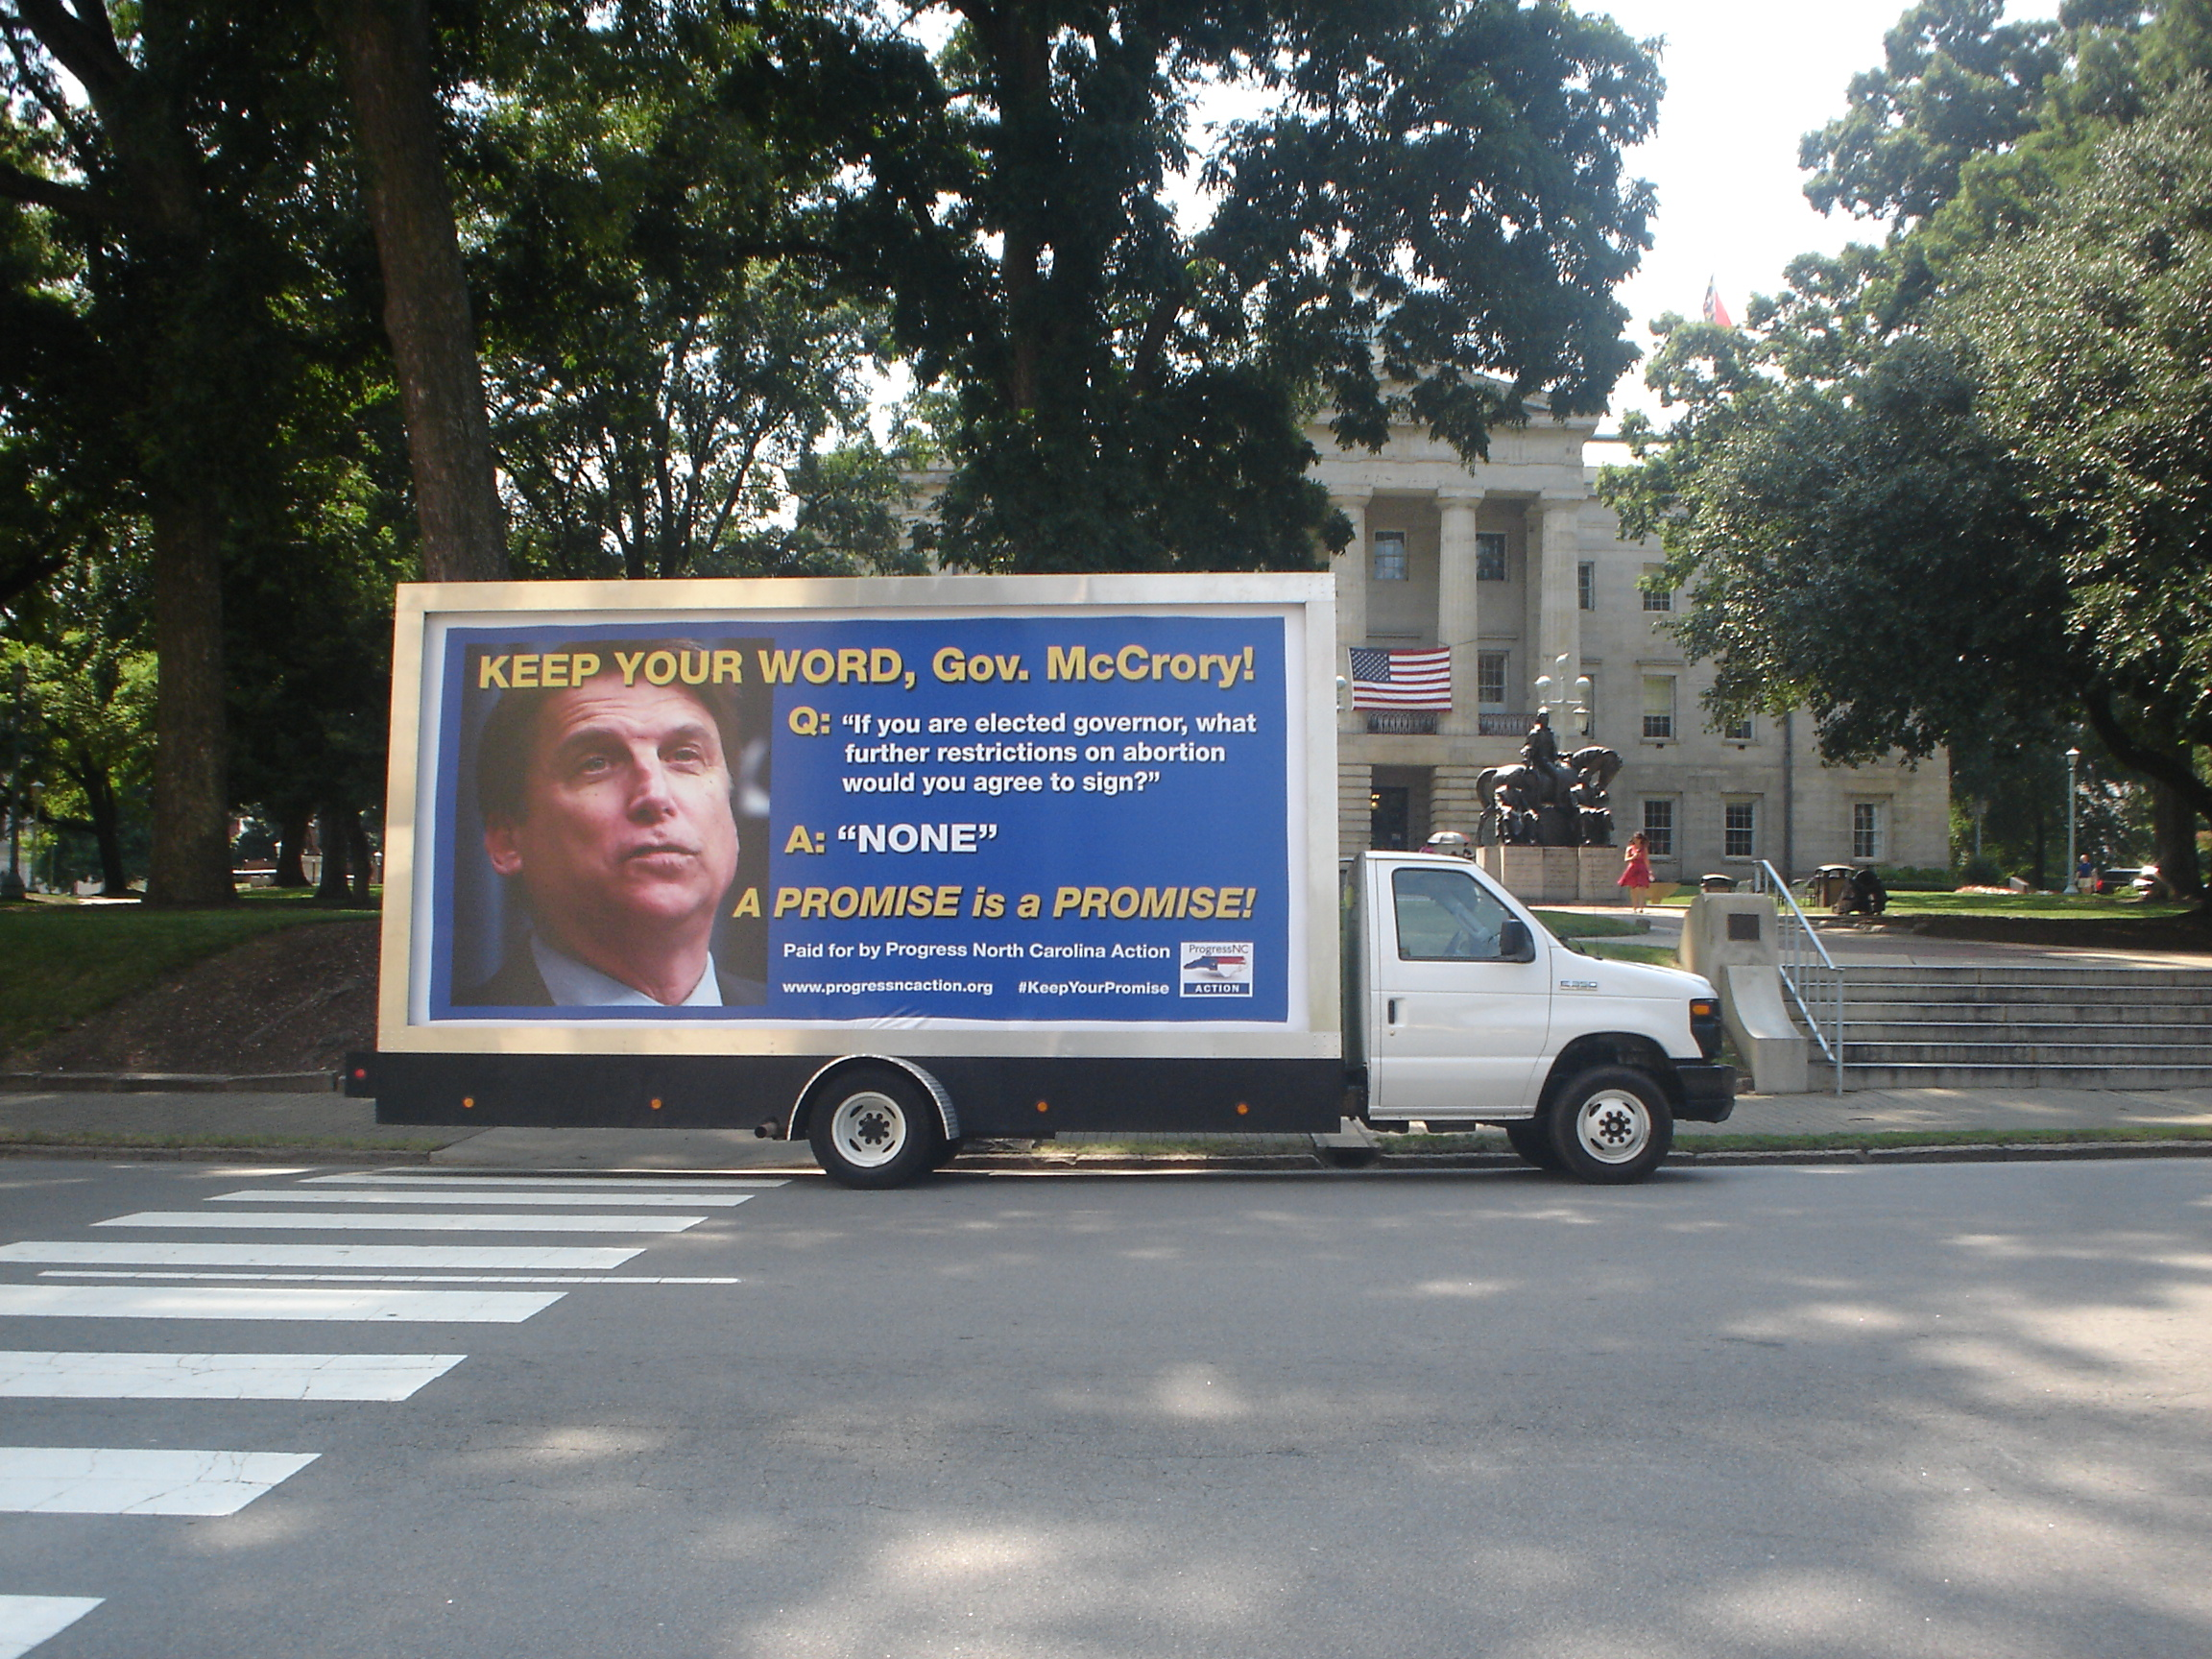 Mobile Billboard Advertising in Raleigh, NC